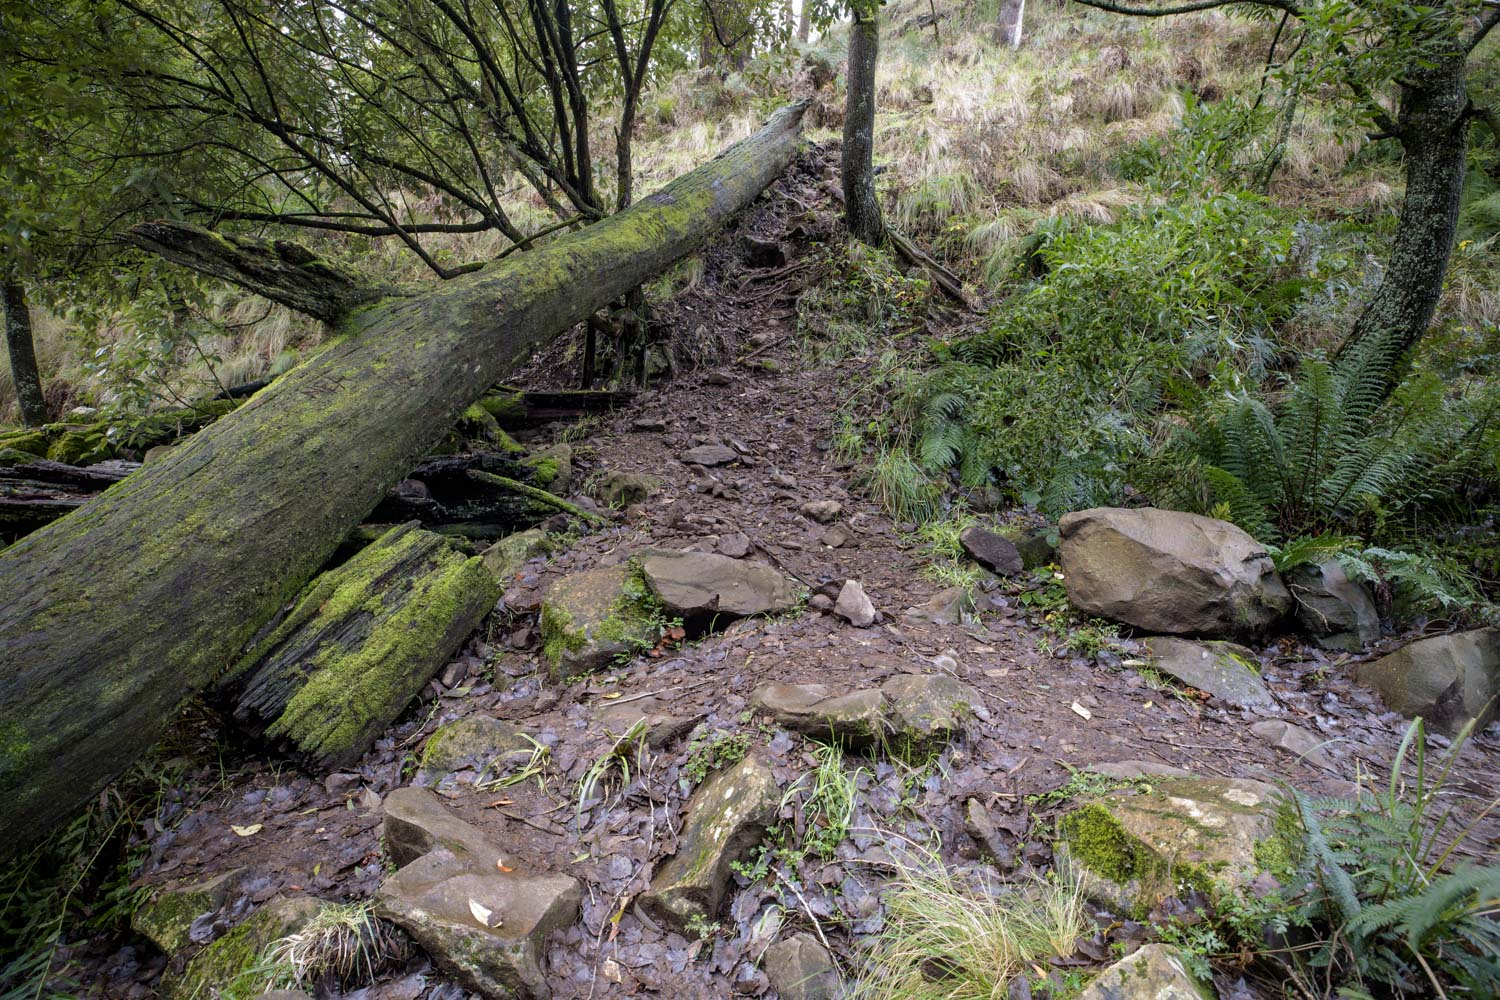 This is the spot I originally took my image from in 2016. The area has now been cleared and almost not trace of the ferns and moss that lined my photograph.